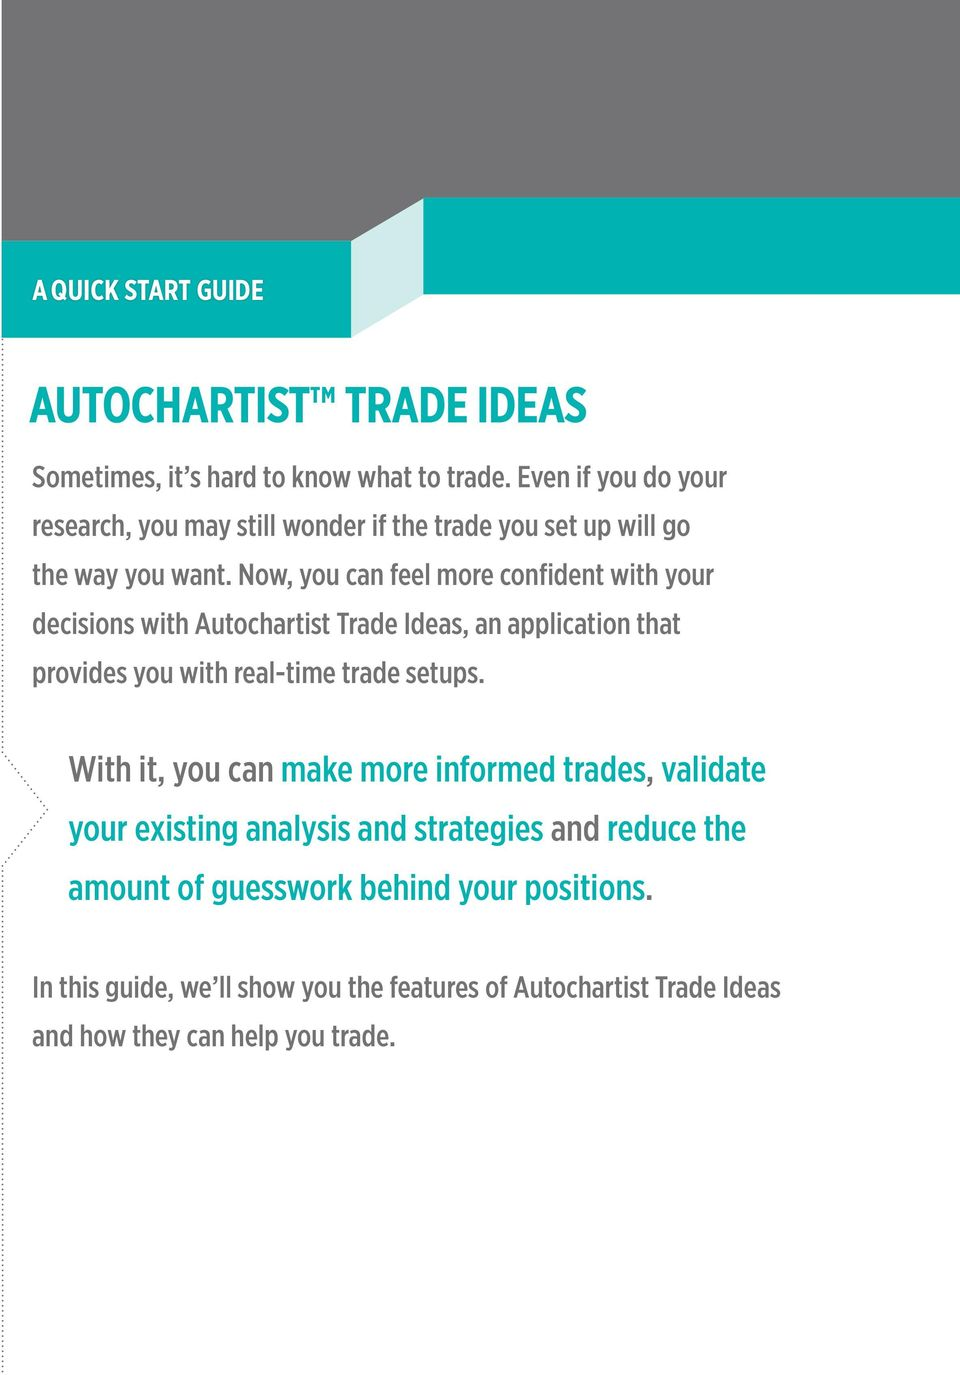 Now, you can feel more confident with your decisions with Autochartist Trade Ideas, an application that provides you with real-time trade setups.